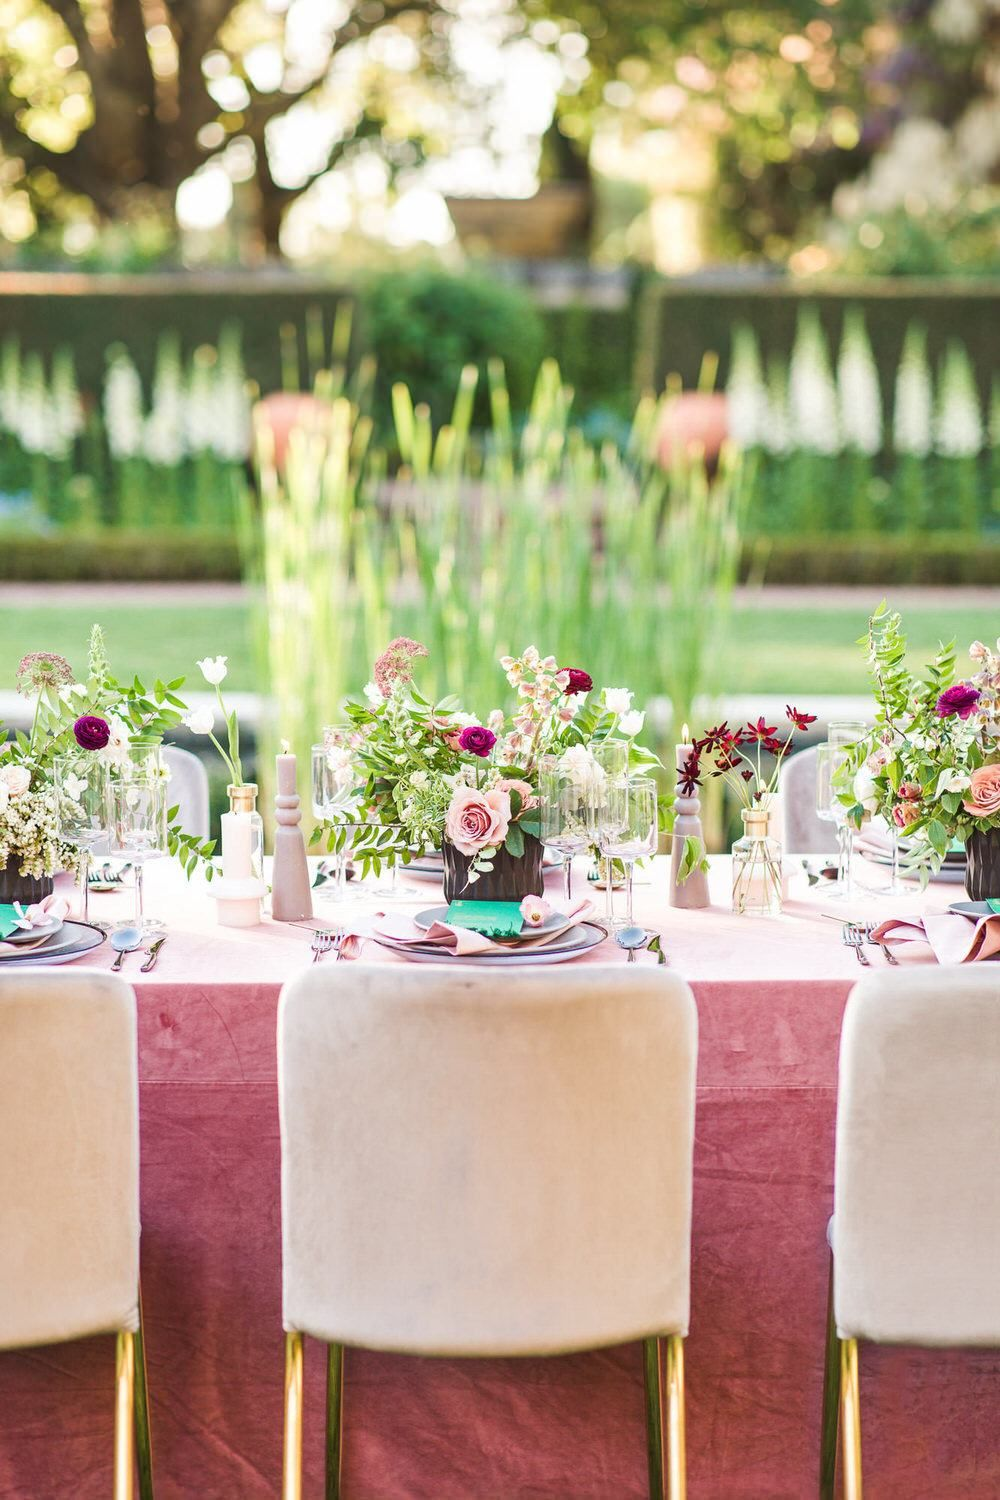 This ultra romantic garden wedding inspo with modern details is just what we needed today. Southern California wedding vendors have created the perfect color palette of mauve and emerald green in the most intimate setting.